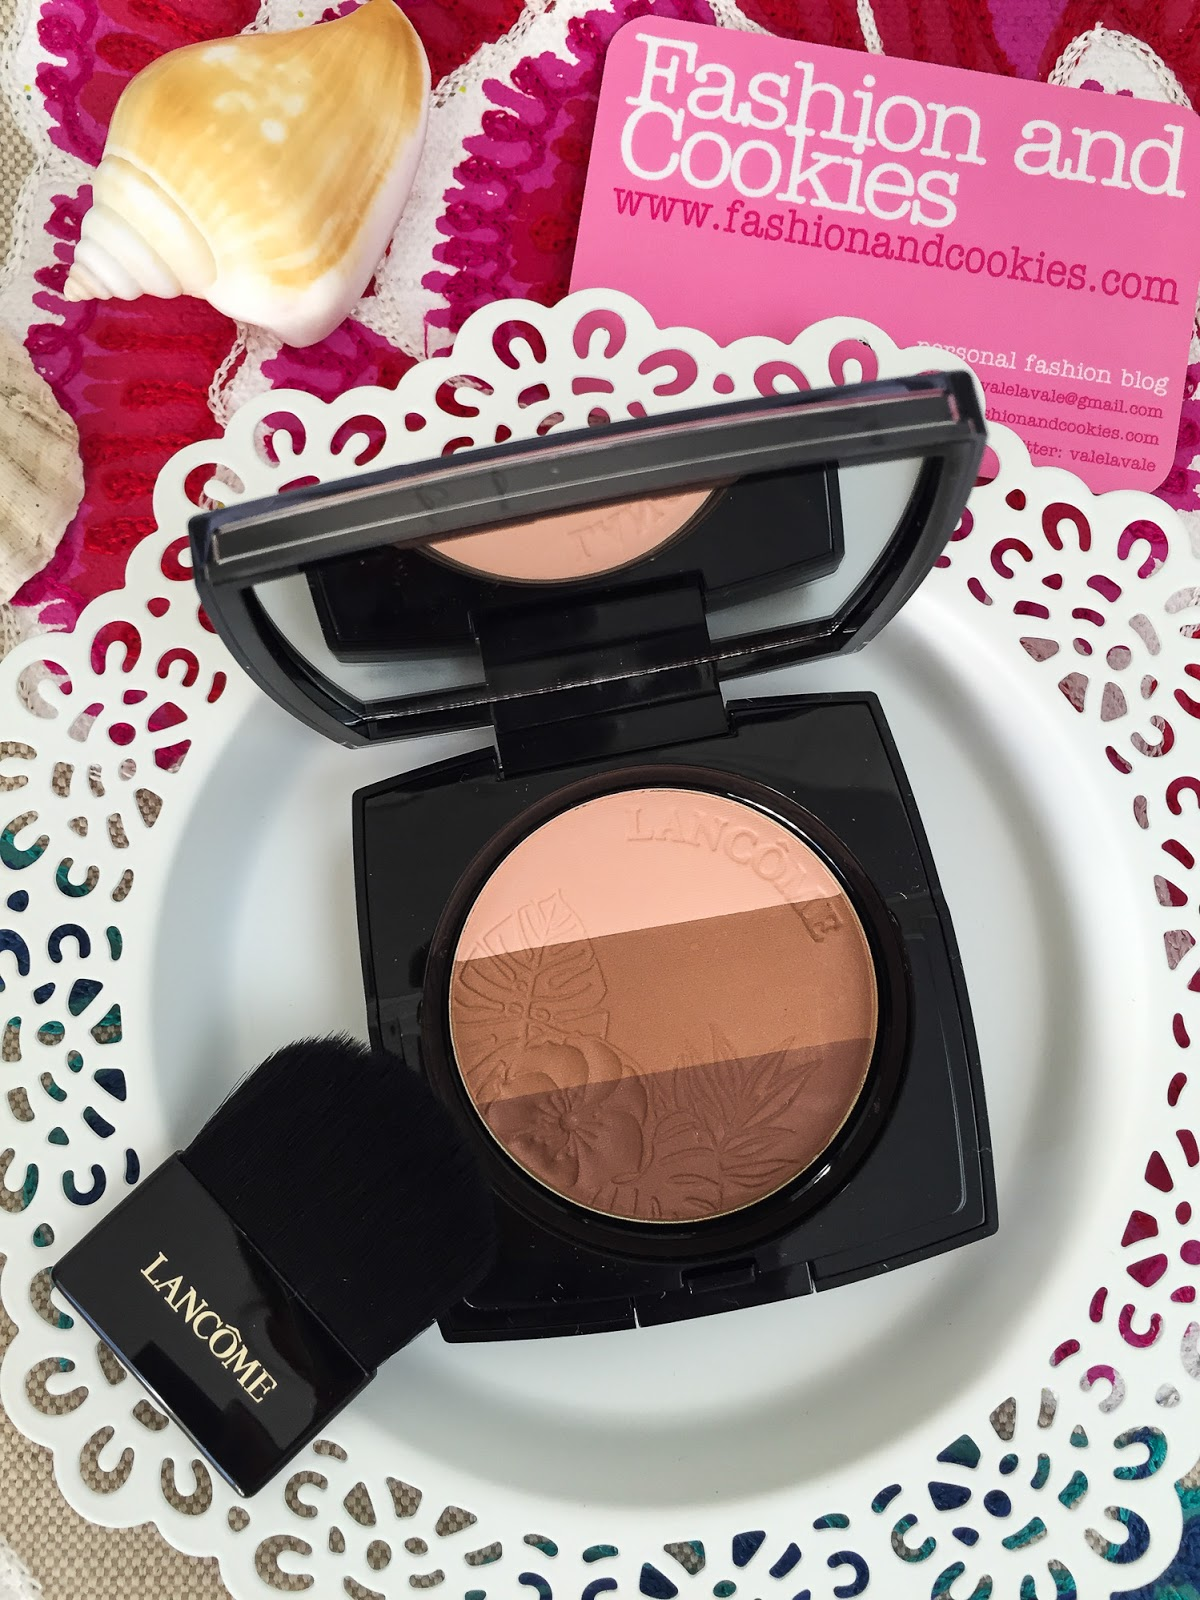 Lancôme makeup collection 2016: Summer bliss, Belle de Teint Powder glow trio review on Fashion and Cookies fashion blog, fashion blogger